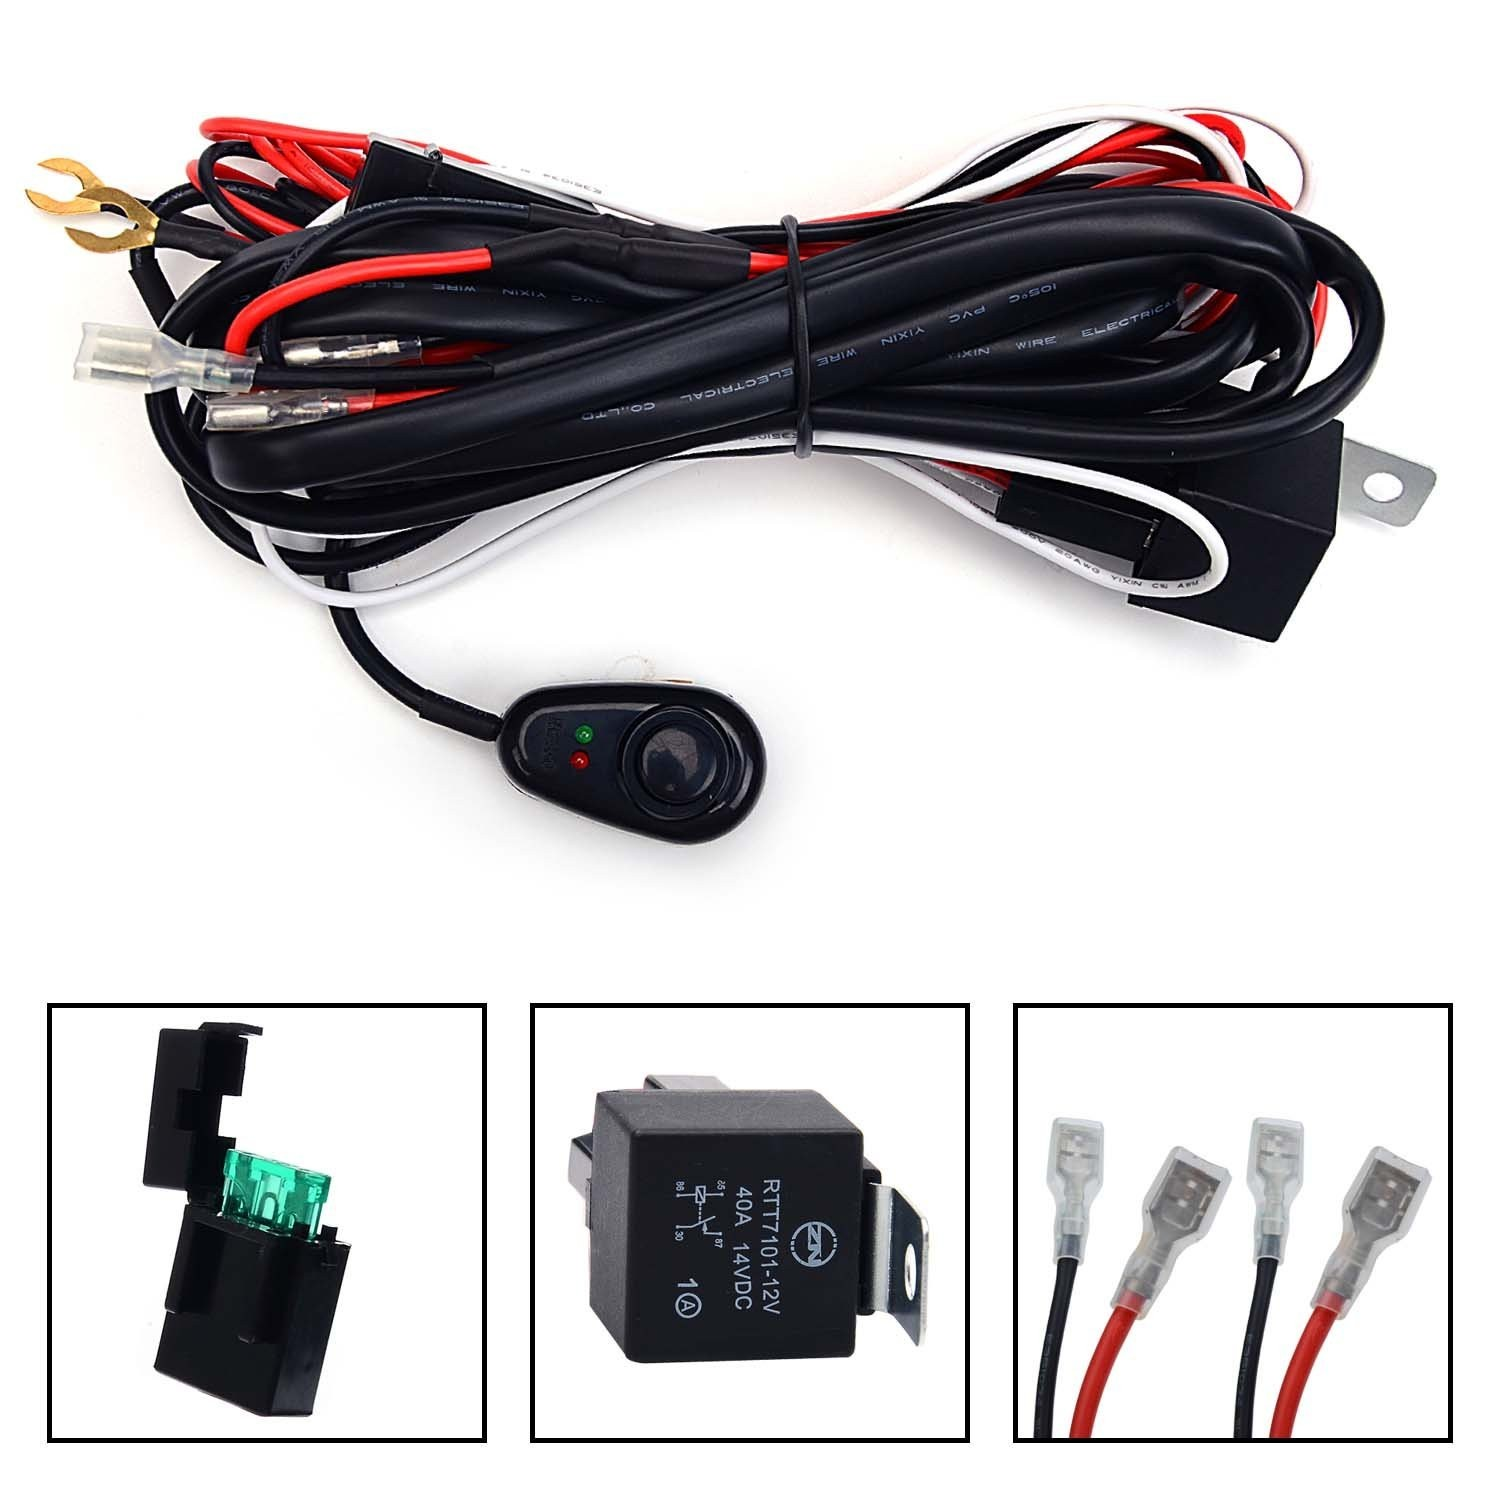 KAWELL Universal 2 lead LED Light Bar Wiring Harness Kit with Fuse Relay ON OFF Switch for LED froad Driving Light LED Lamp Fog Light Work Light 12V 40A